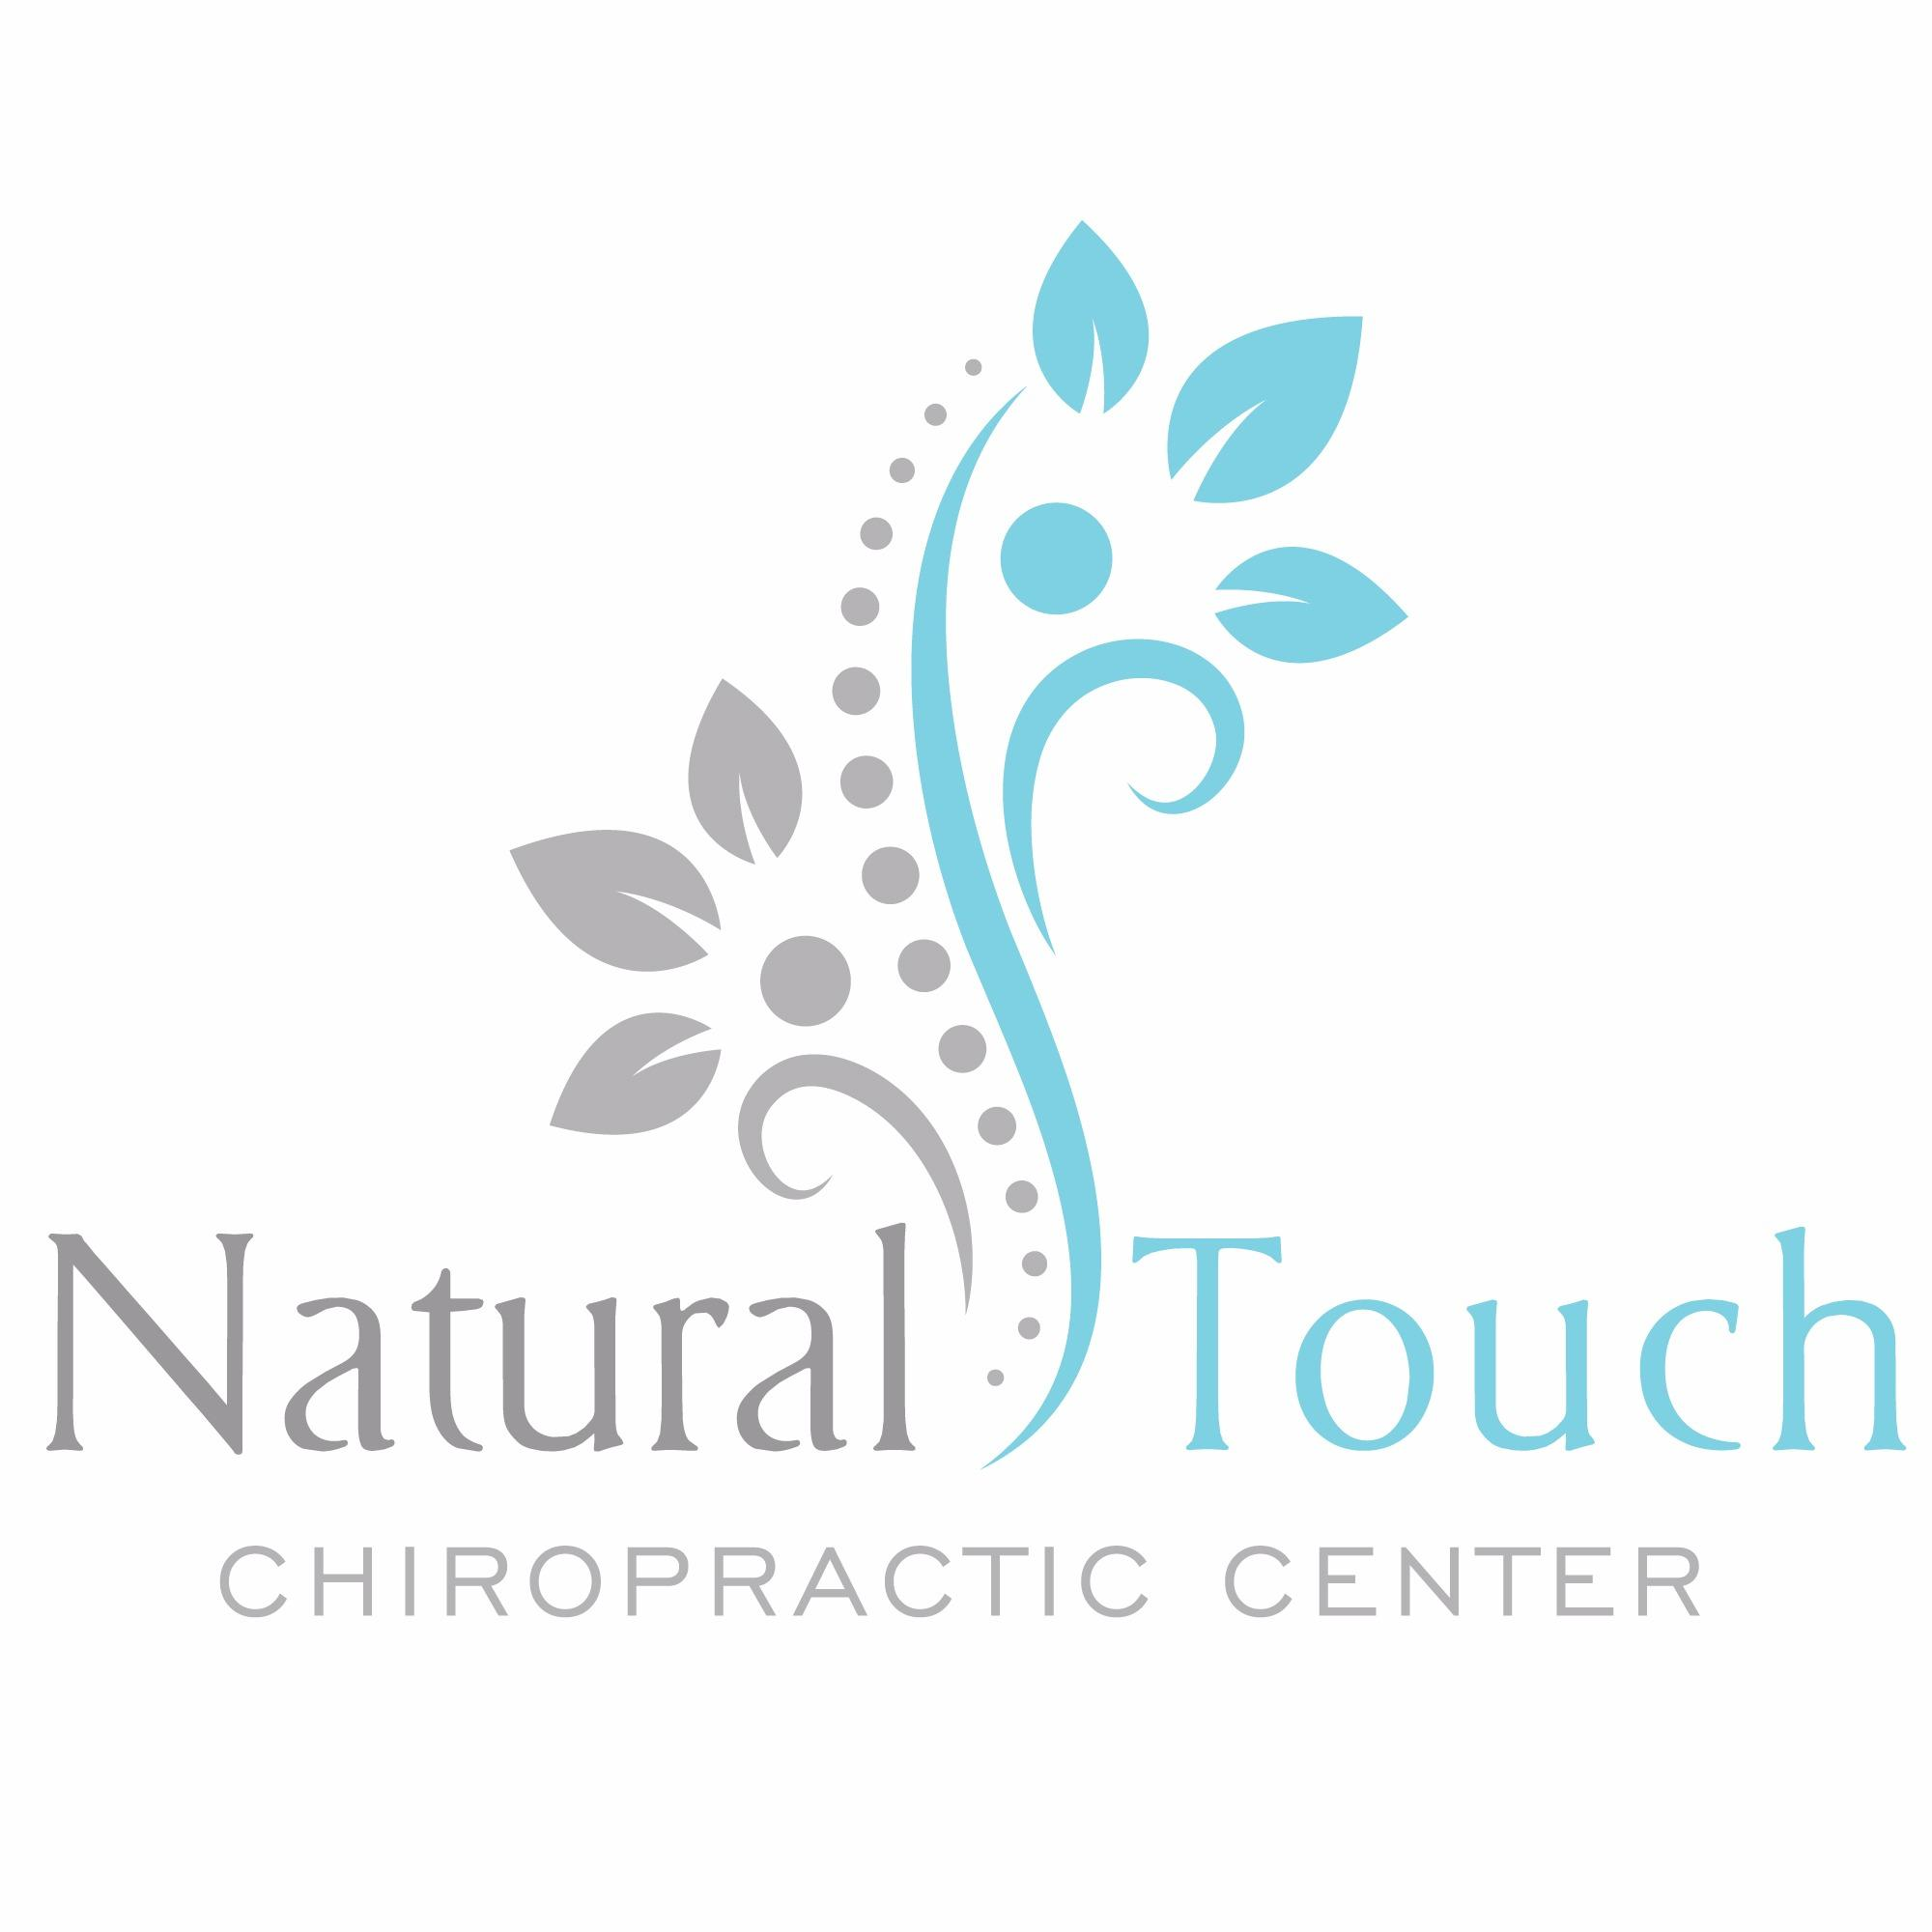 Natural Touch Chiropractic Center